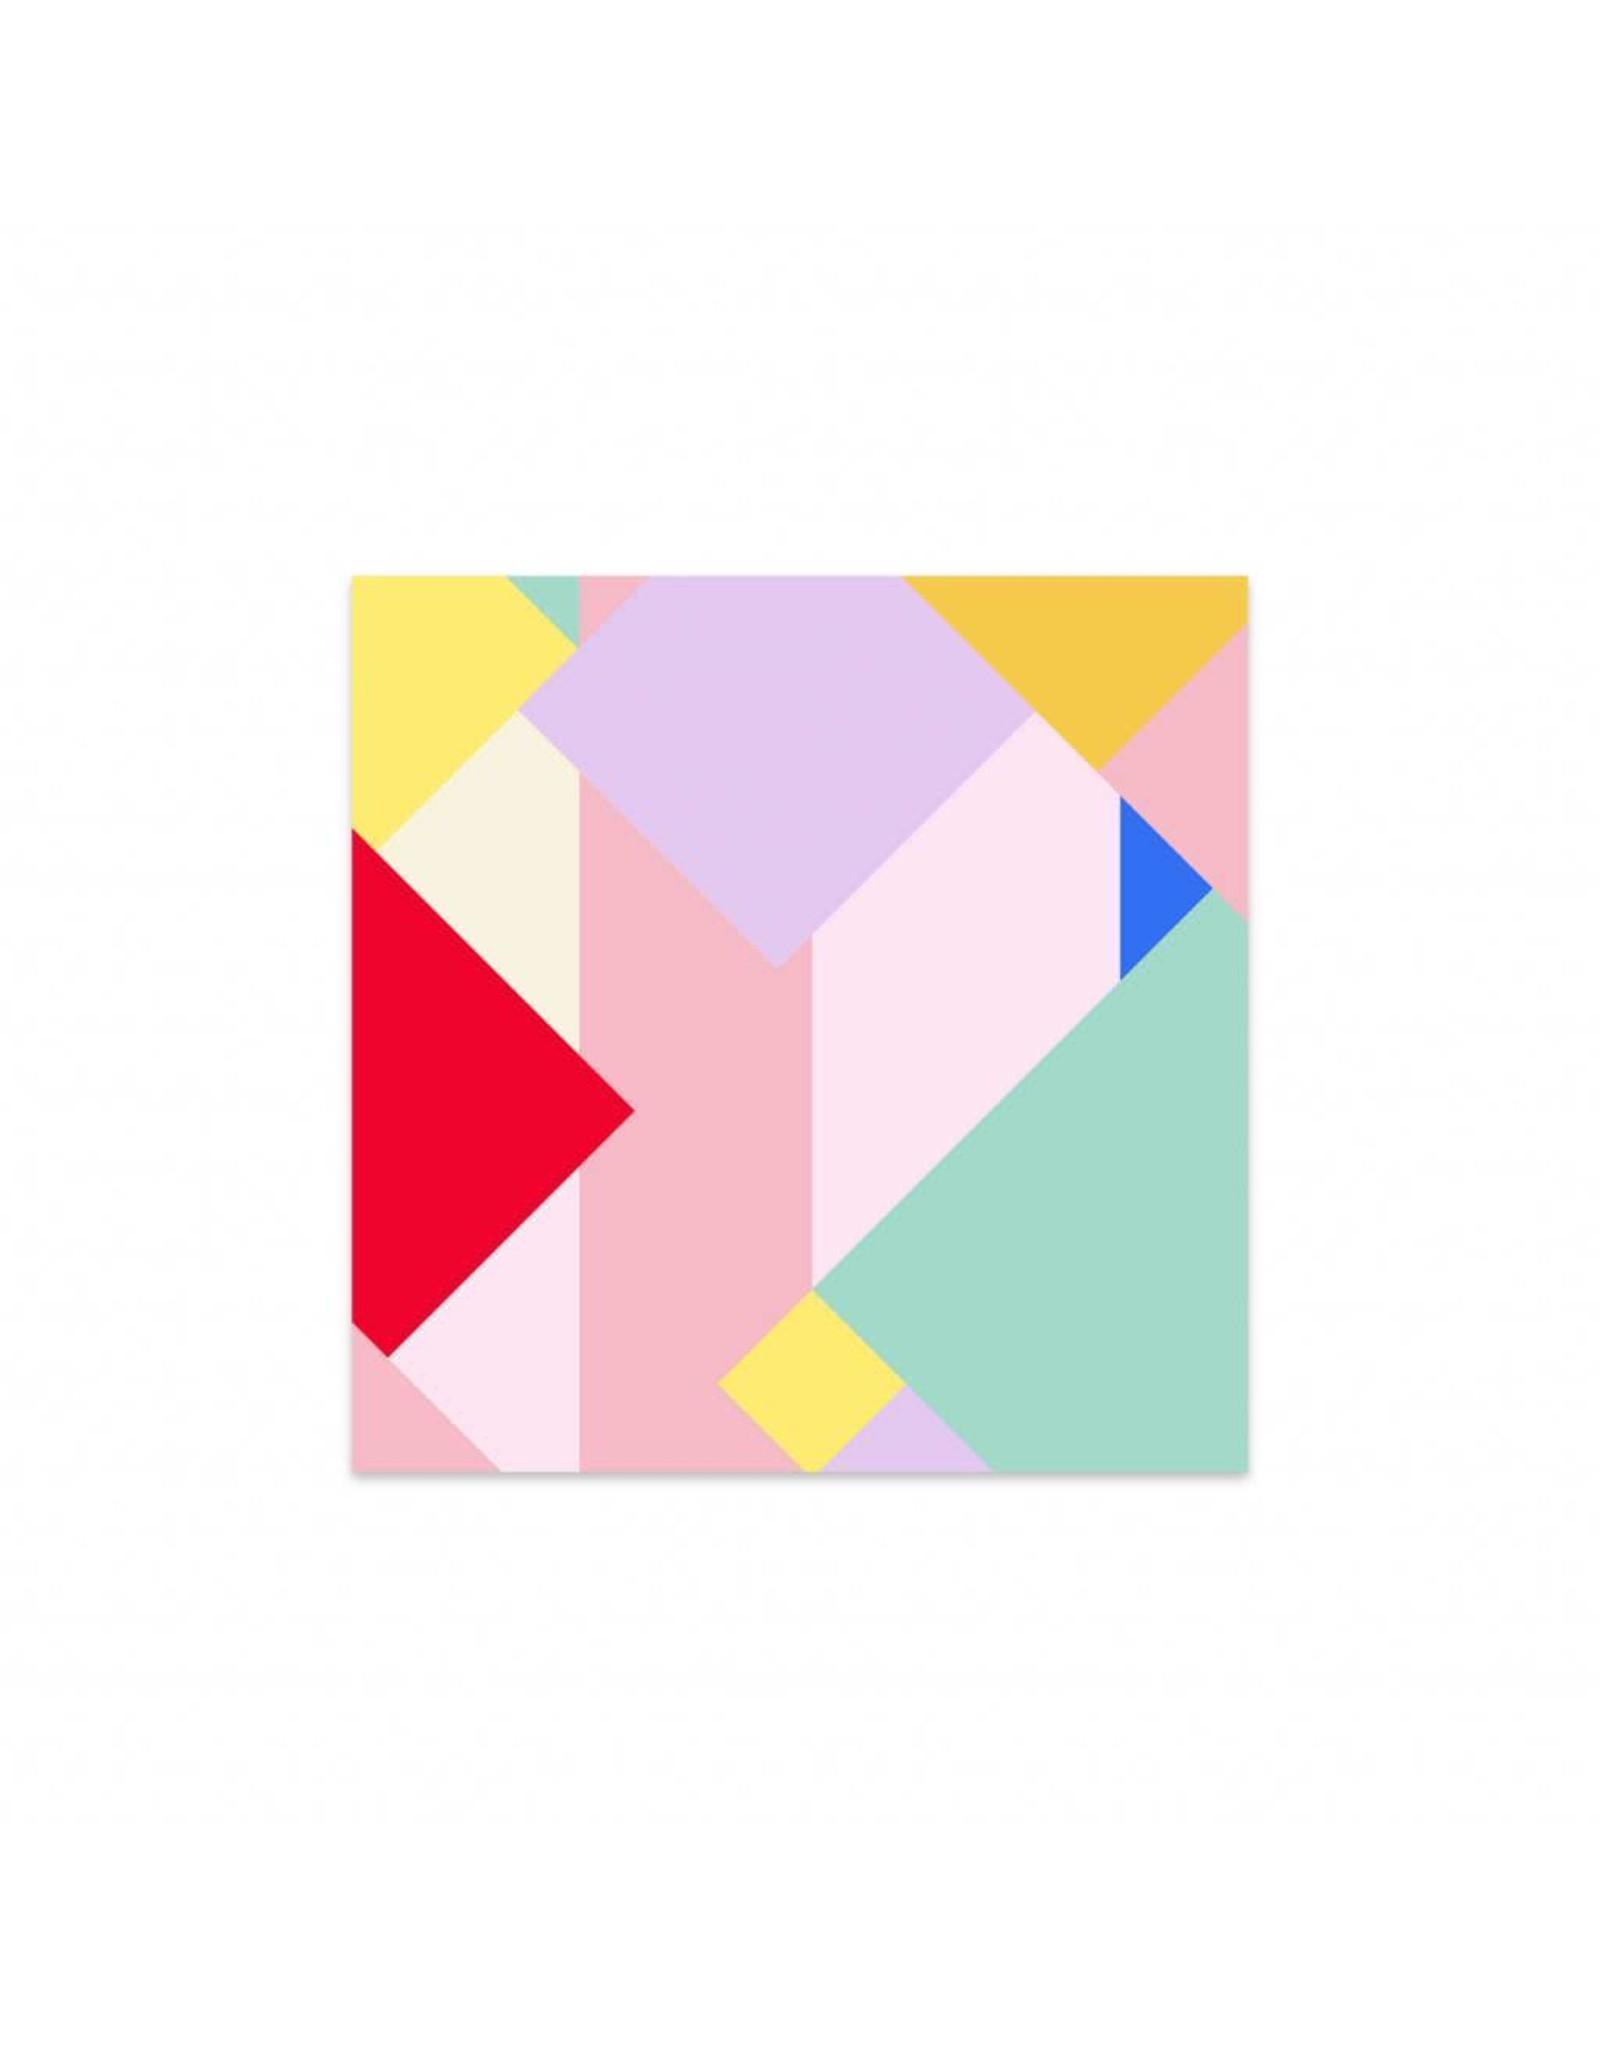 Post-its graphic